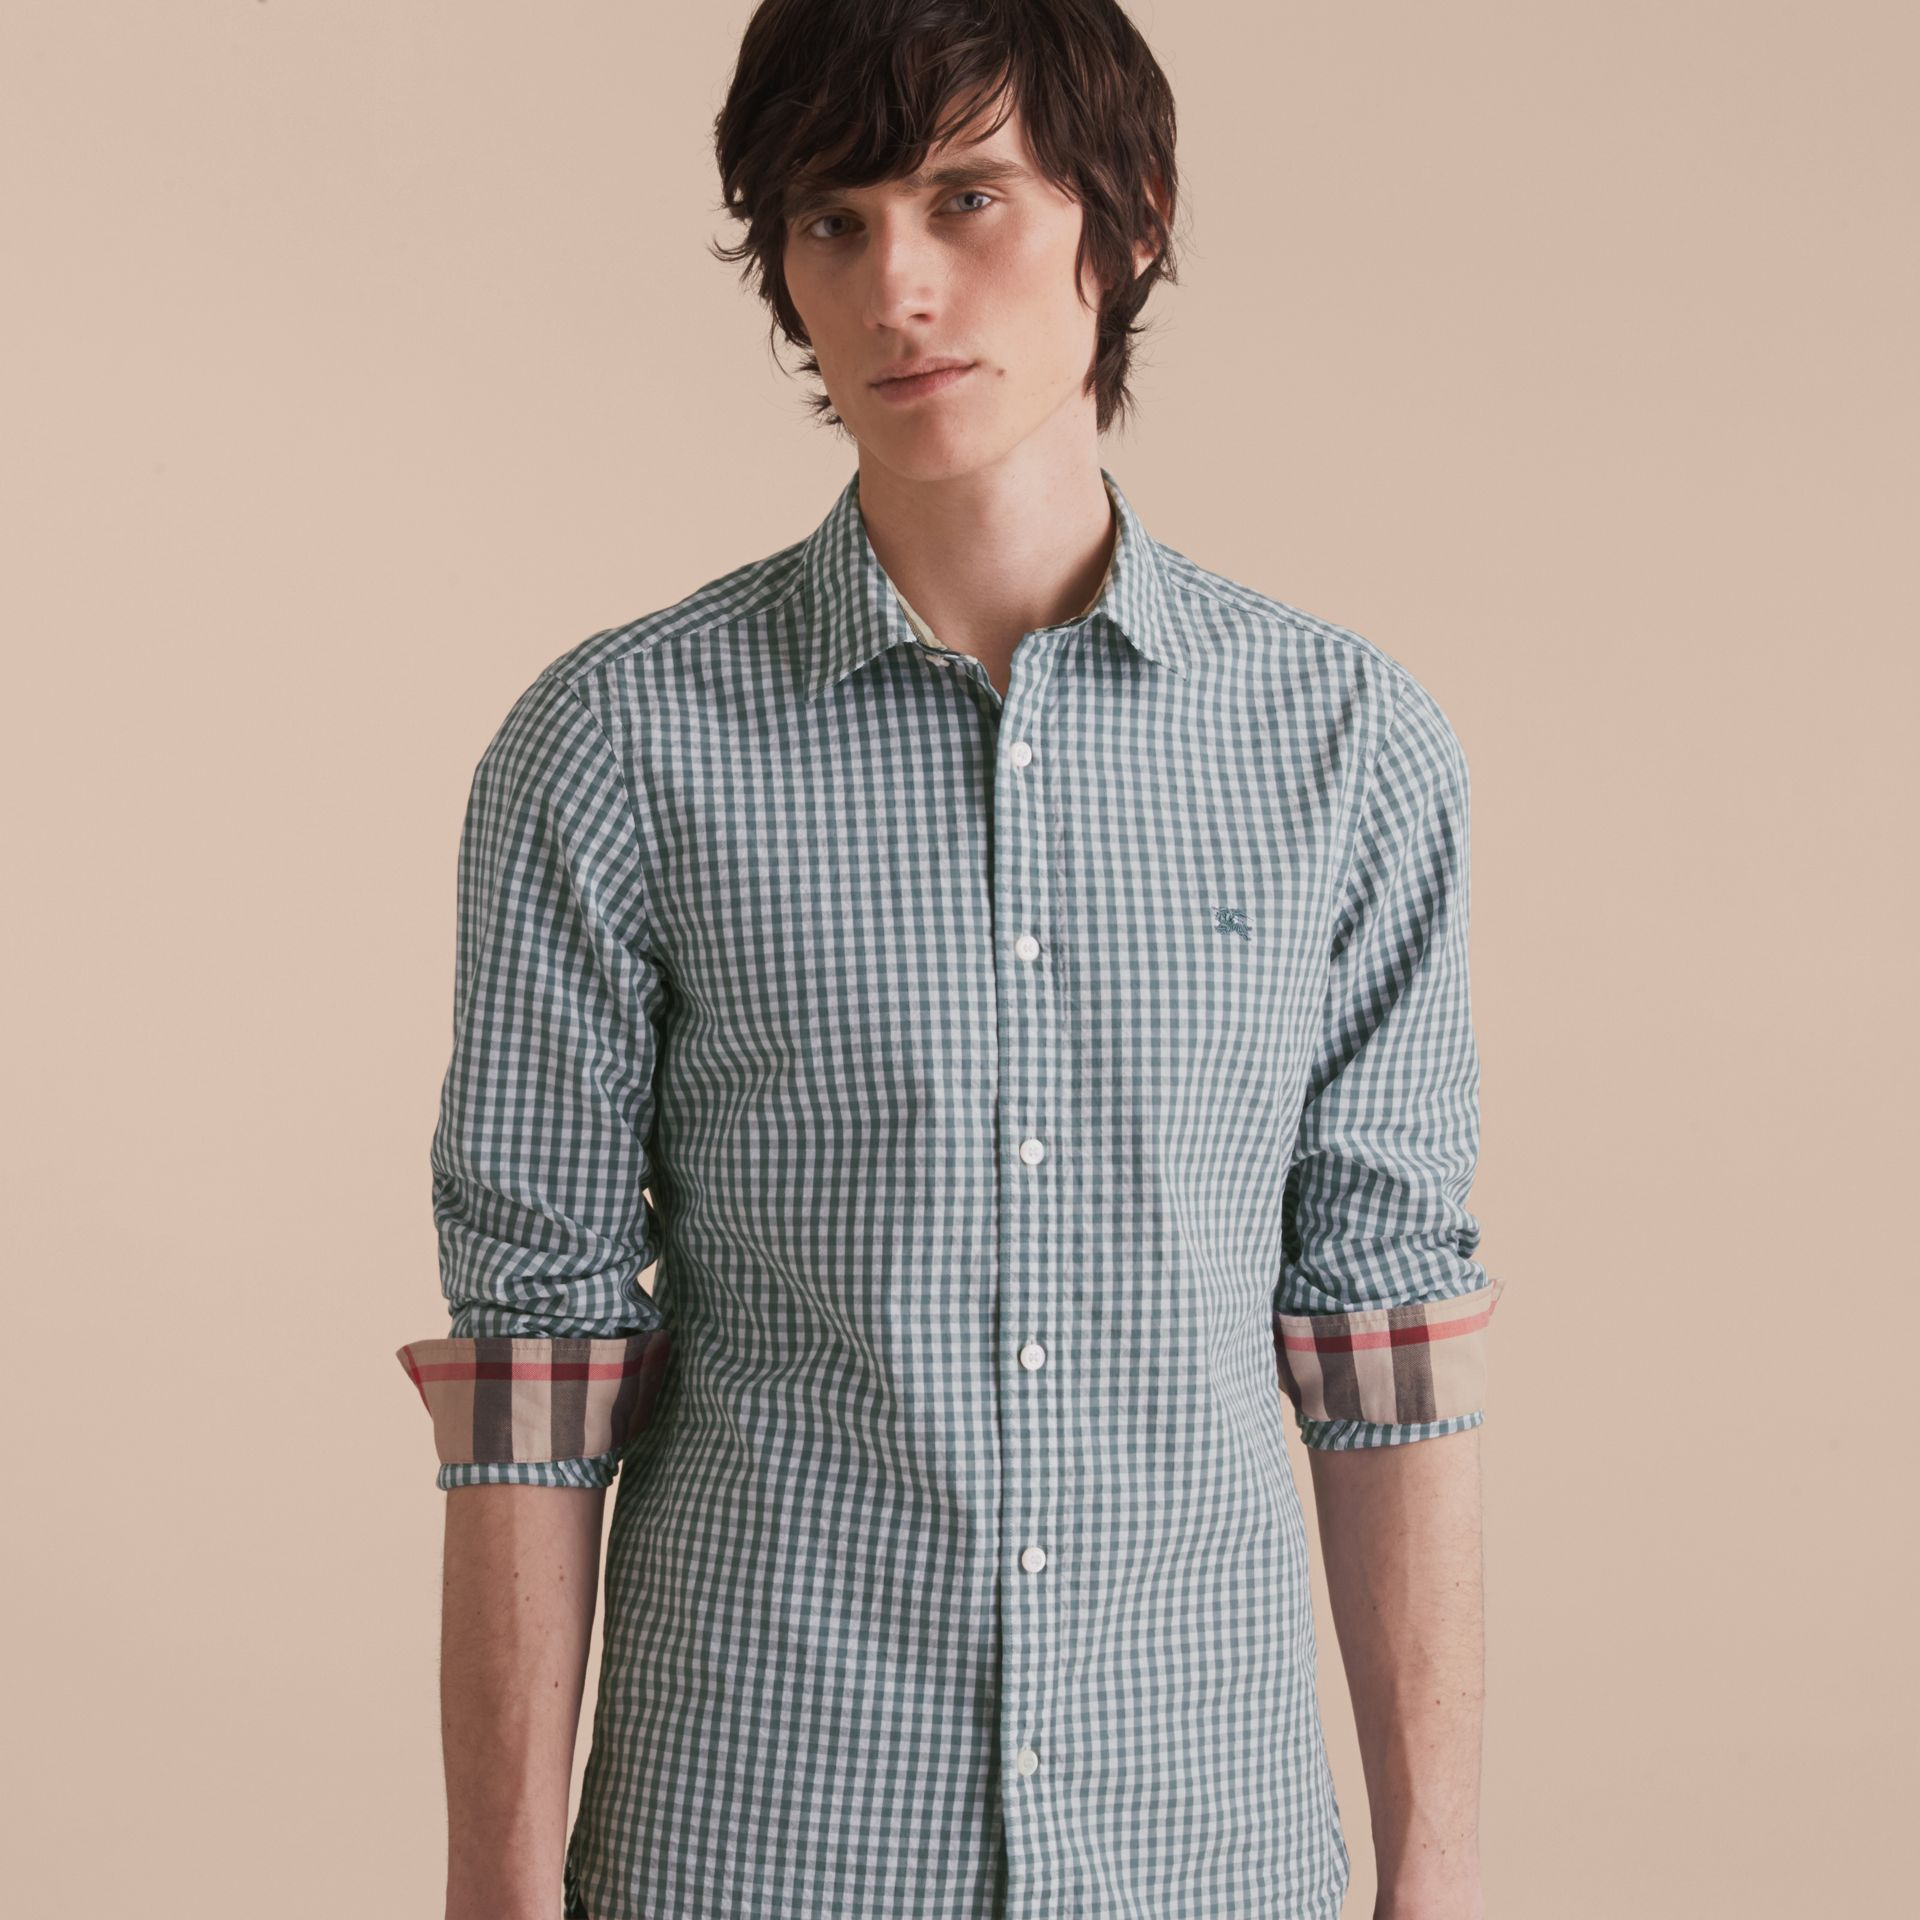 Gingham Cotton Poplin Shirt with Check Detail in Dusty Teal Blue - Men | Burberry - gallery image 6